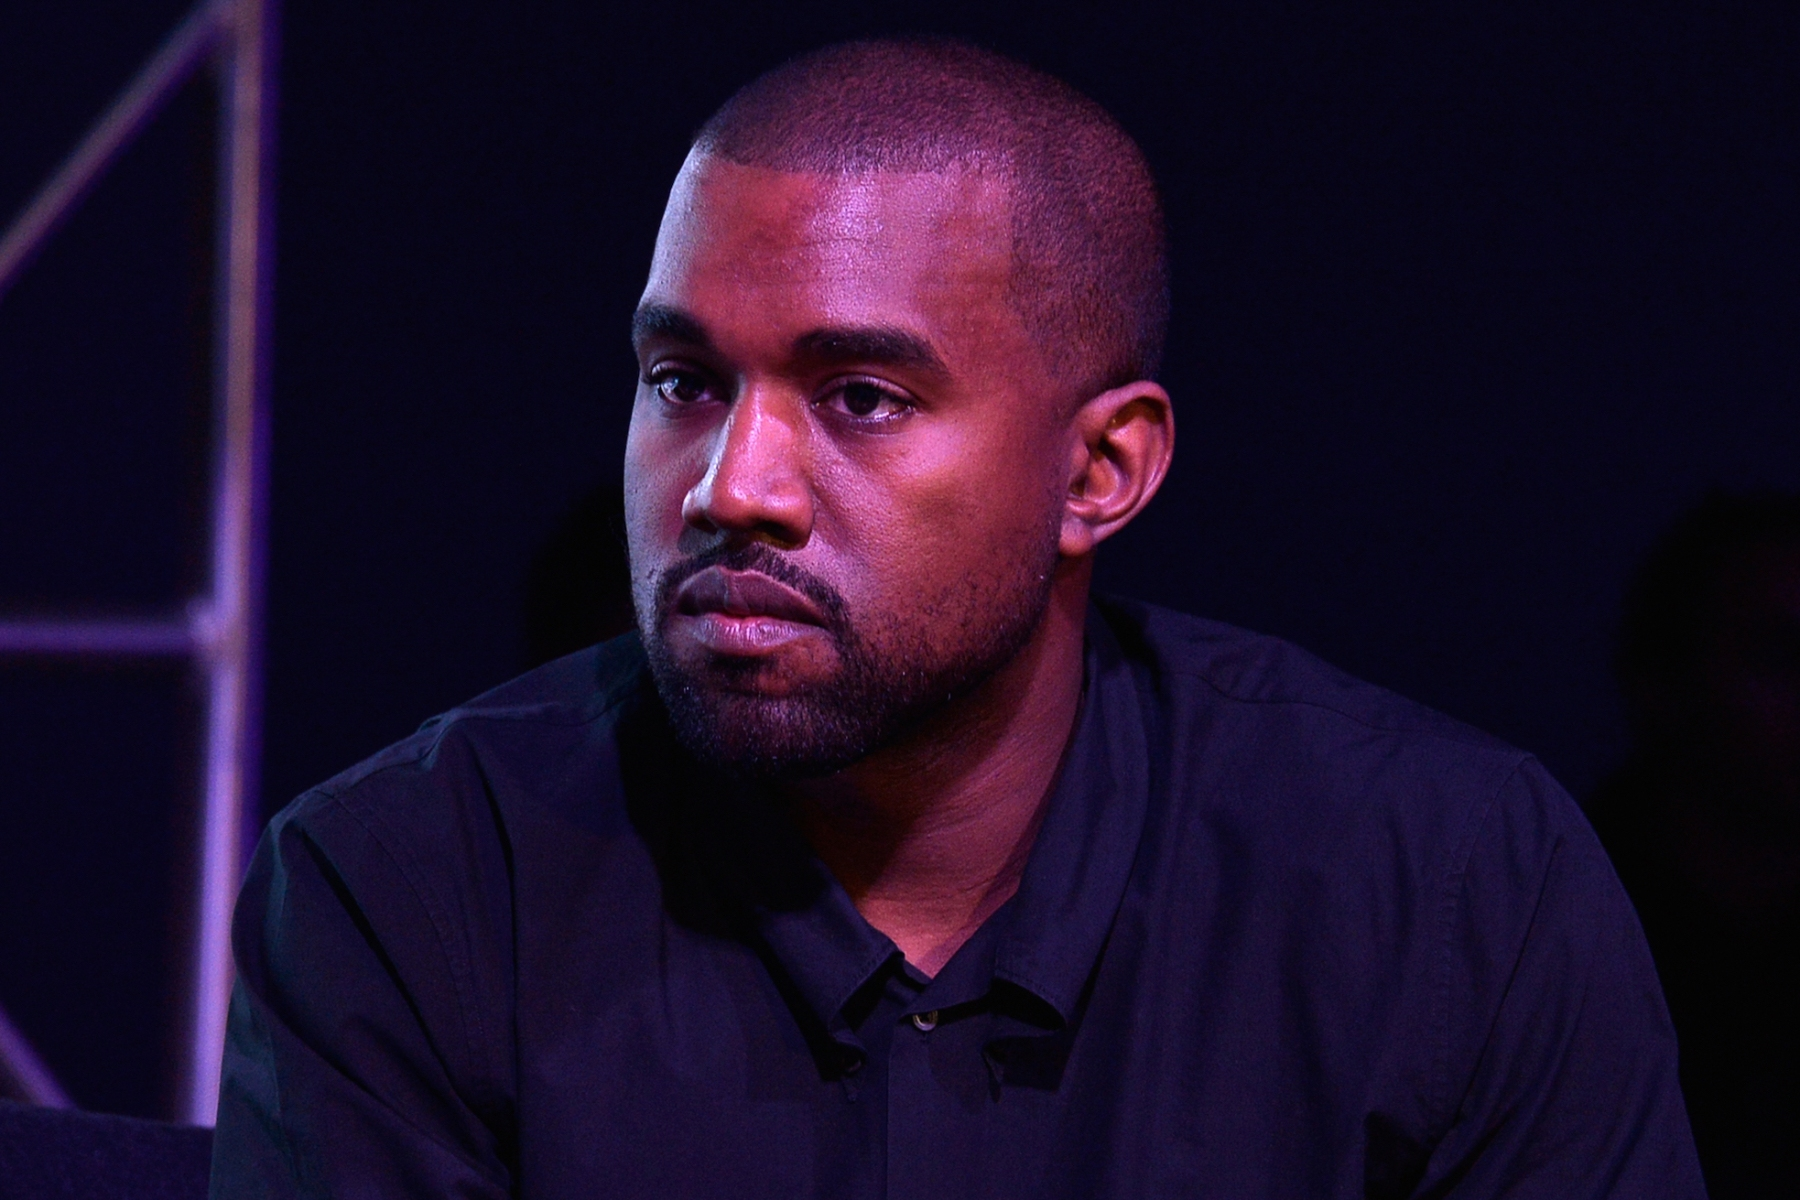 There Is Good Reason for Biden to Fear Kanye's Candidacy